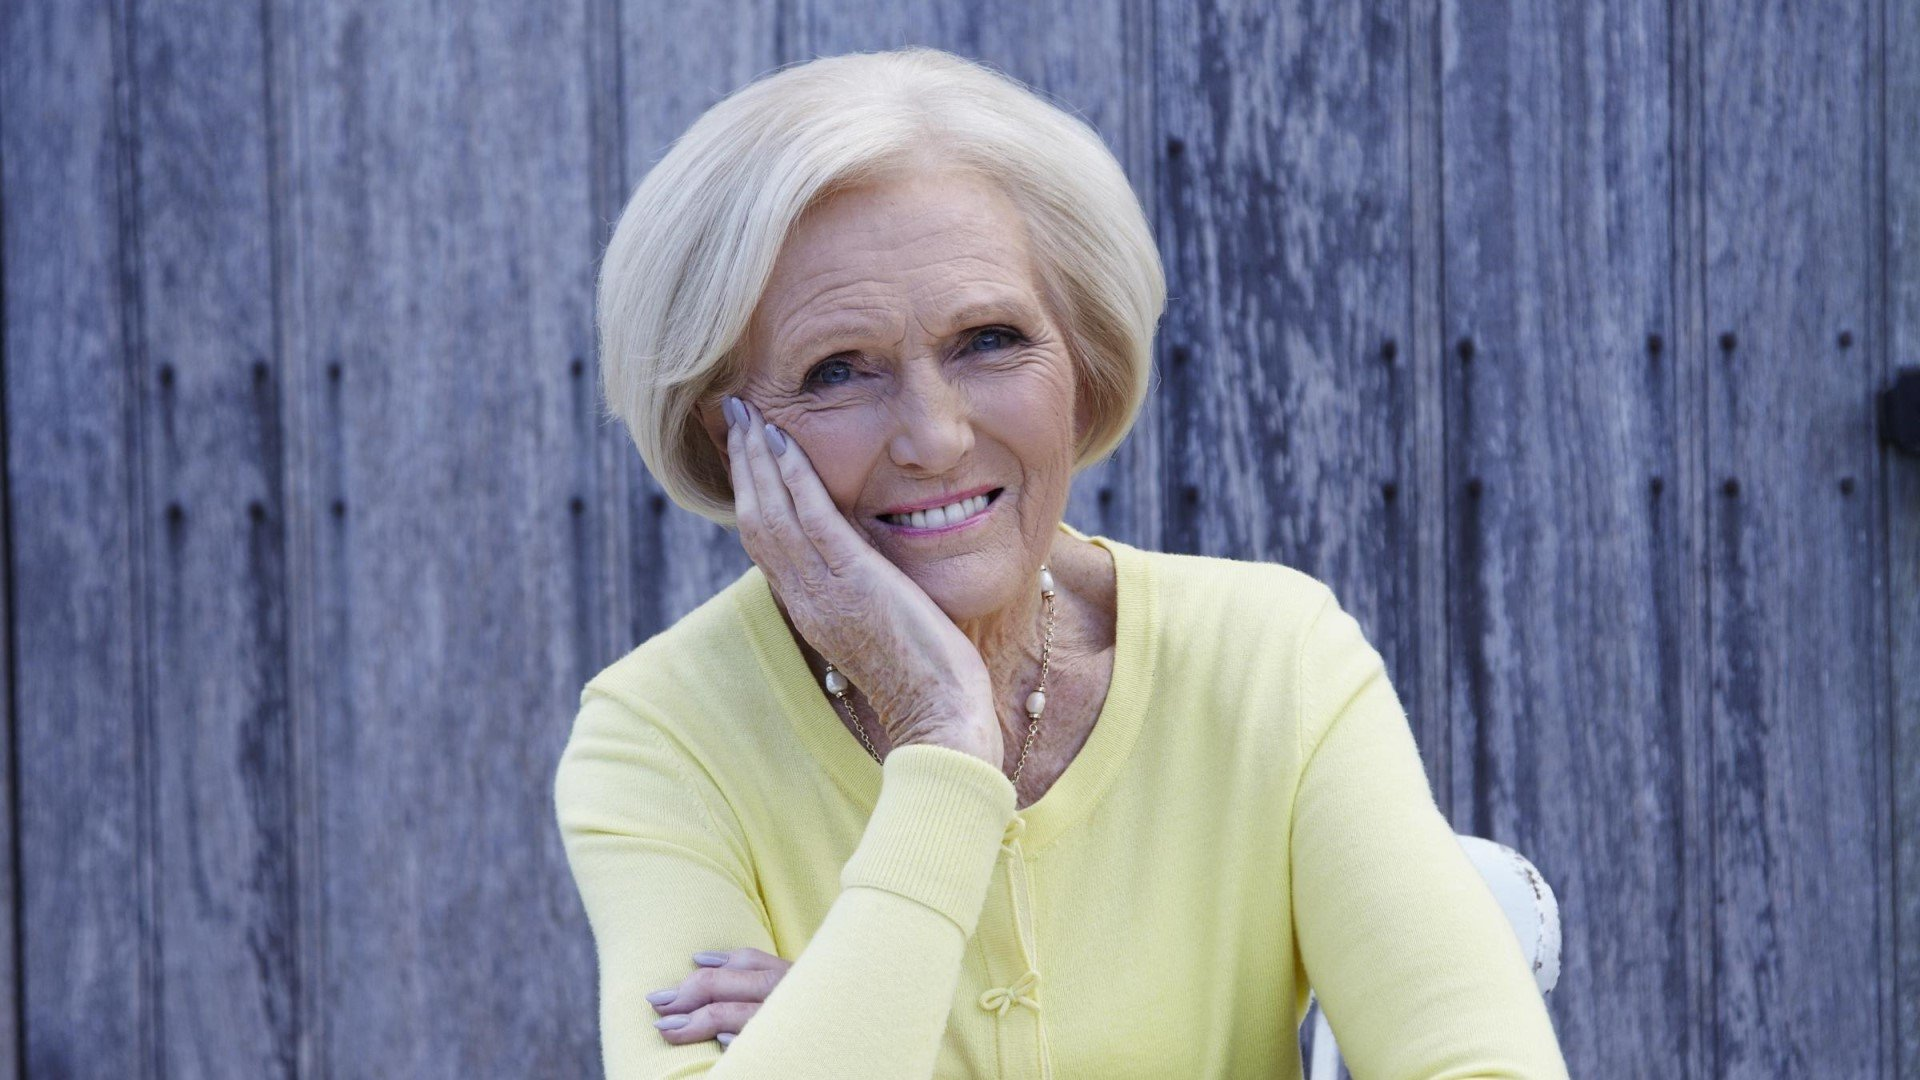 Dame Mary Berry joins impressive line-up at Blenheim Palace Food Festival